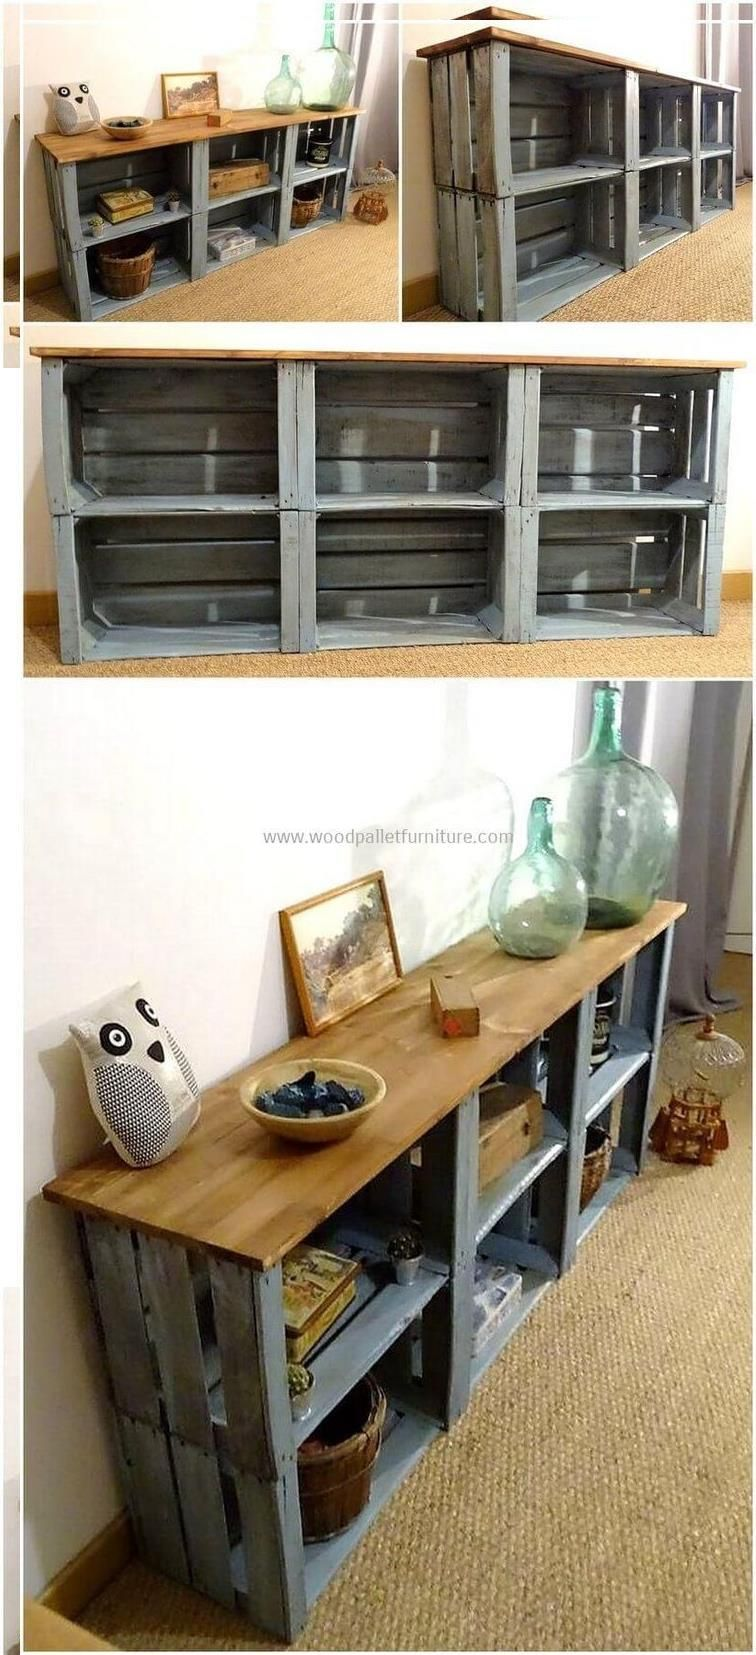 Pallets Made Into Furniture Diy Wood Pallet Projects How To Make A Dining Table Out Of Pallets Crate Bookcase Pallet Furniture Table Pallet Furniture